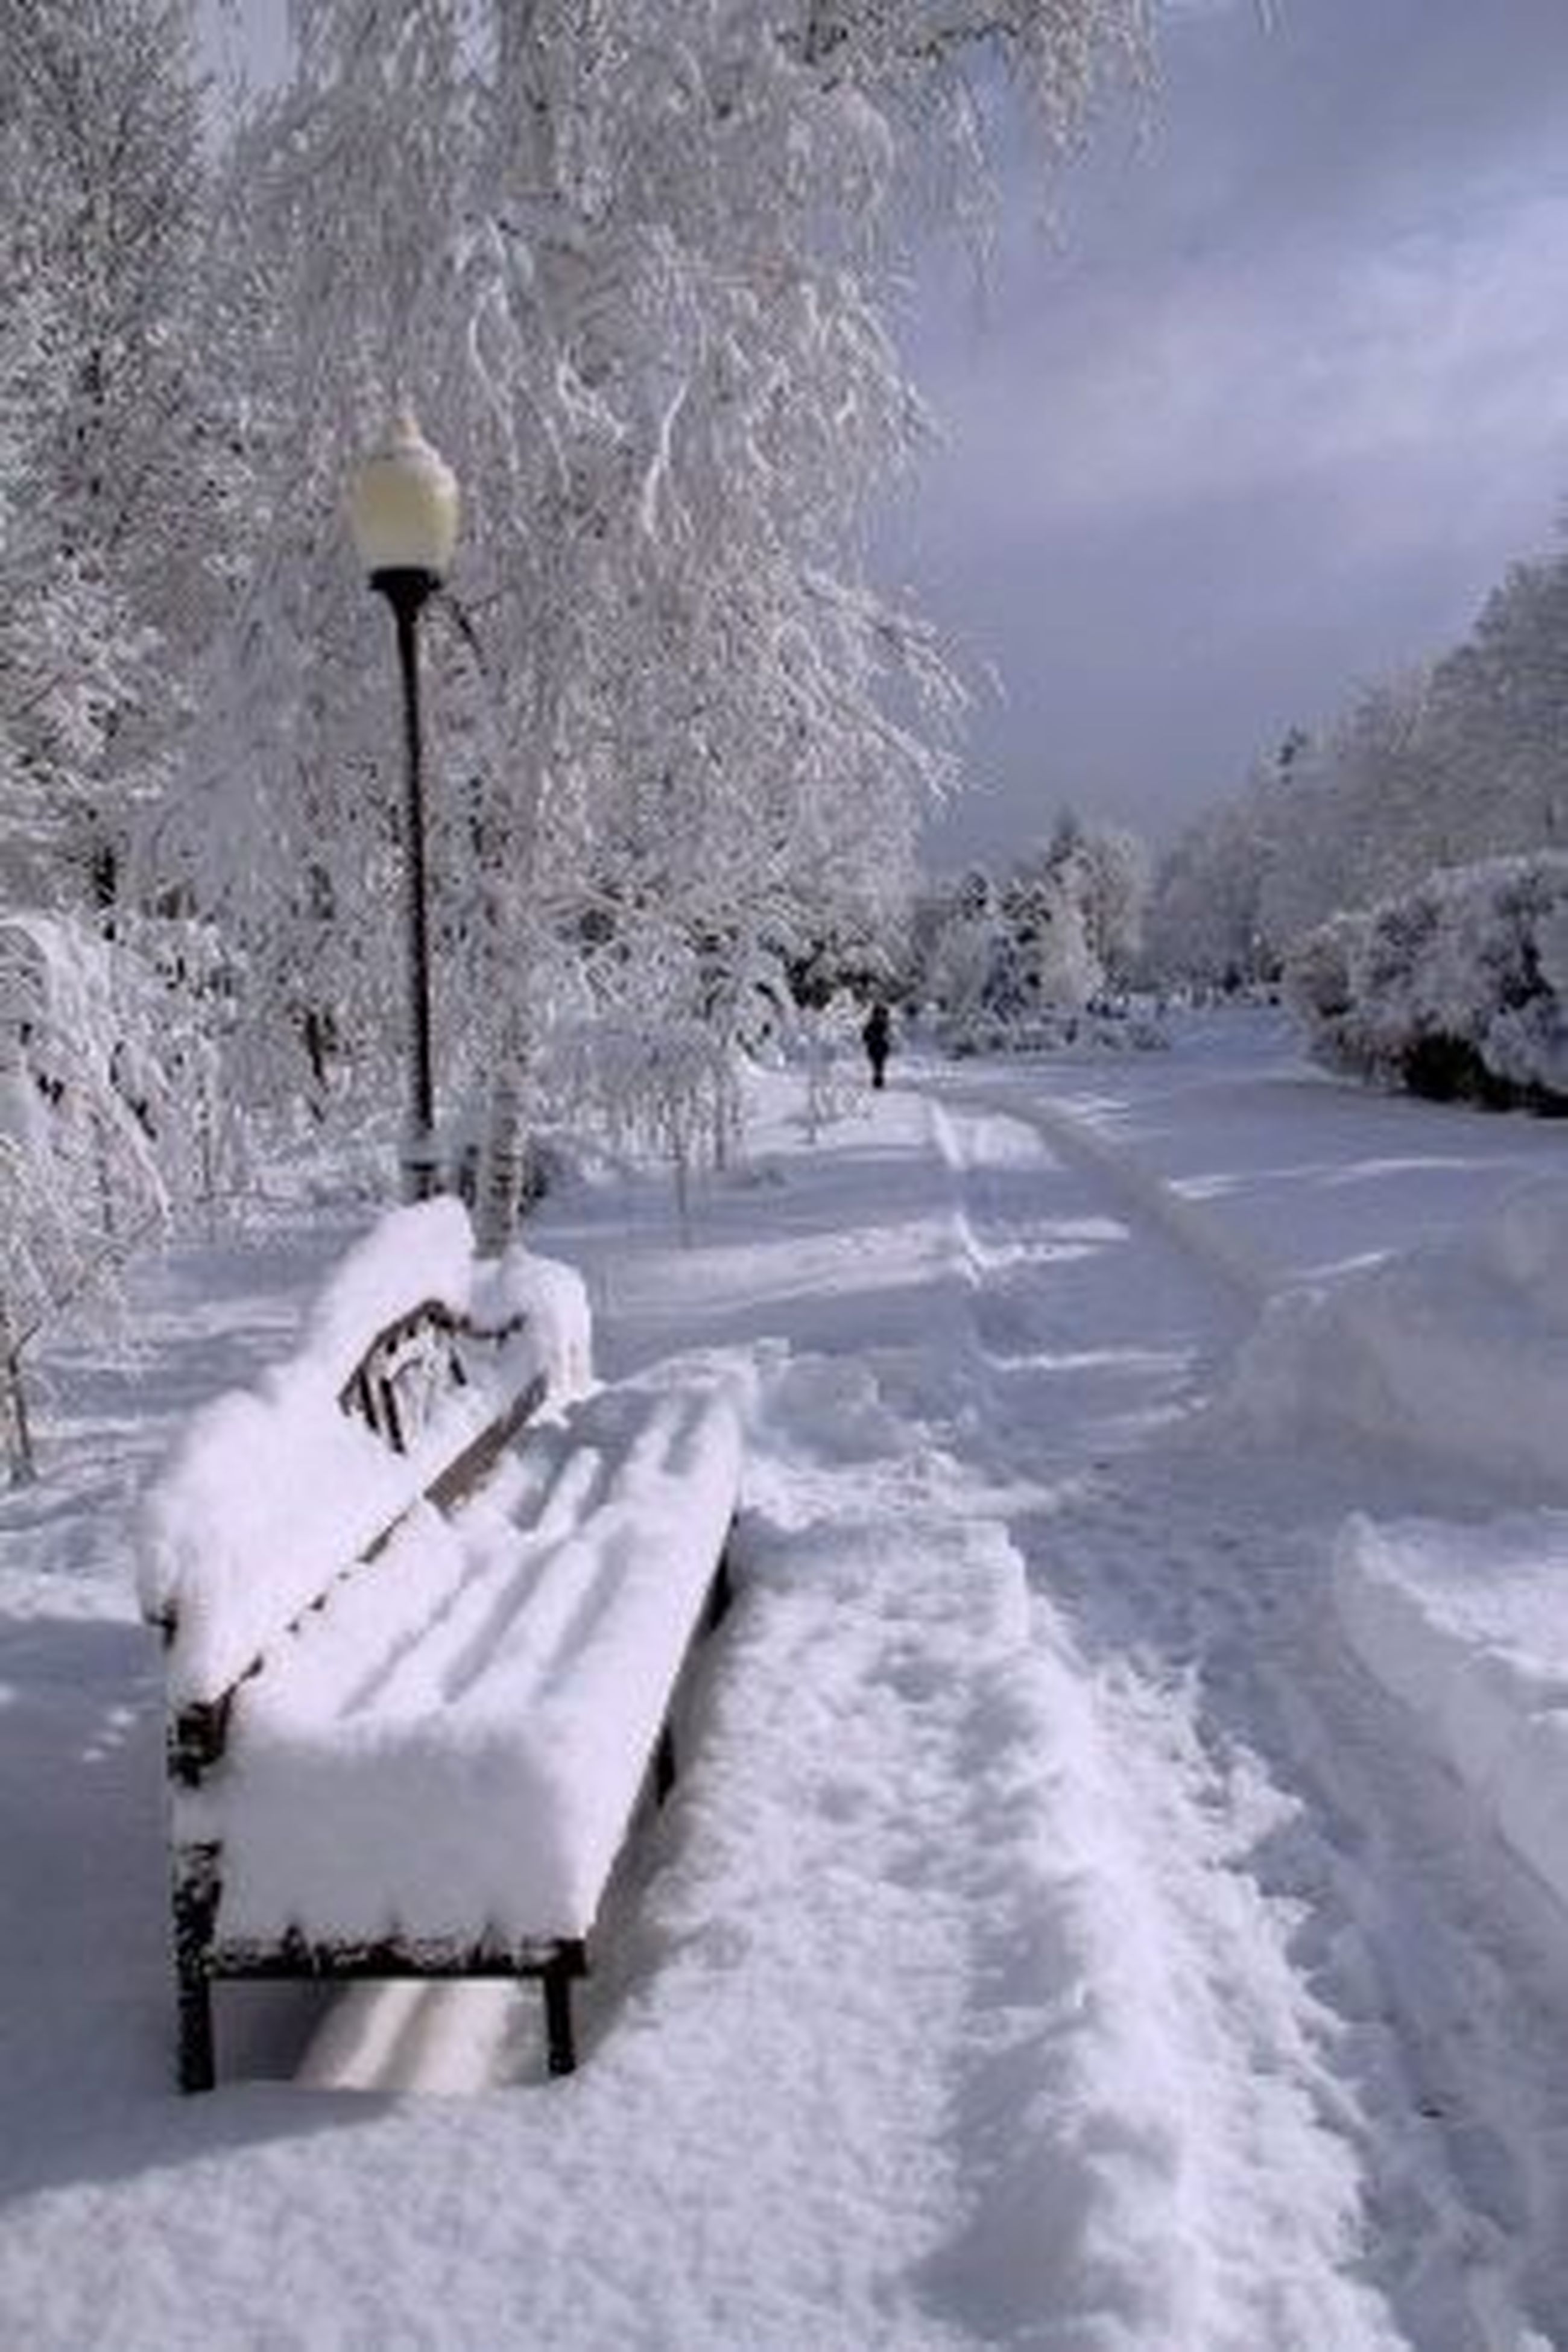 snow, winter, cold temperature, season, weather, covering, white color, frozen, nature, covered, tranquil scene, tranquility, landscape, snow covered, white, tree, beauty in nature, street light, field, scenics